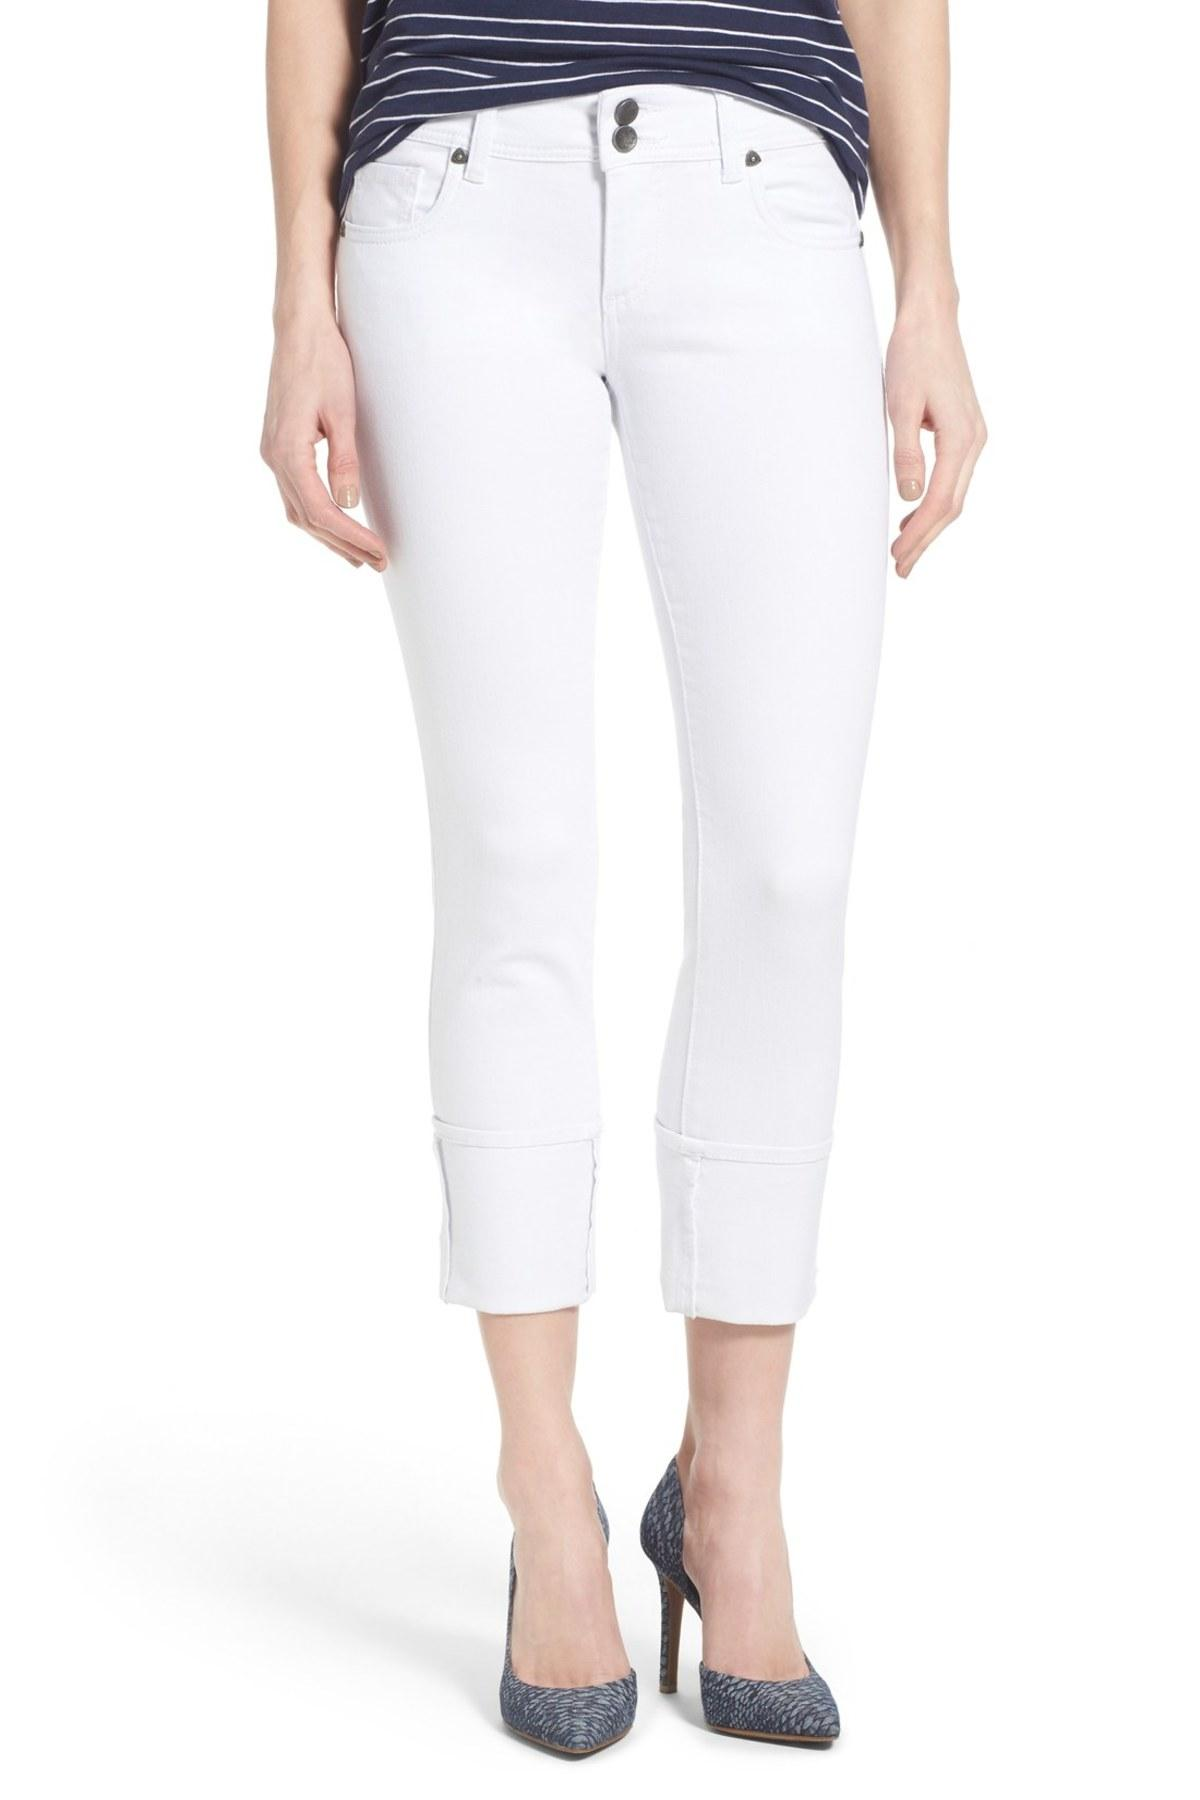 Kut From The Kloth Cameron Stretch Straight Leg Jeans In